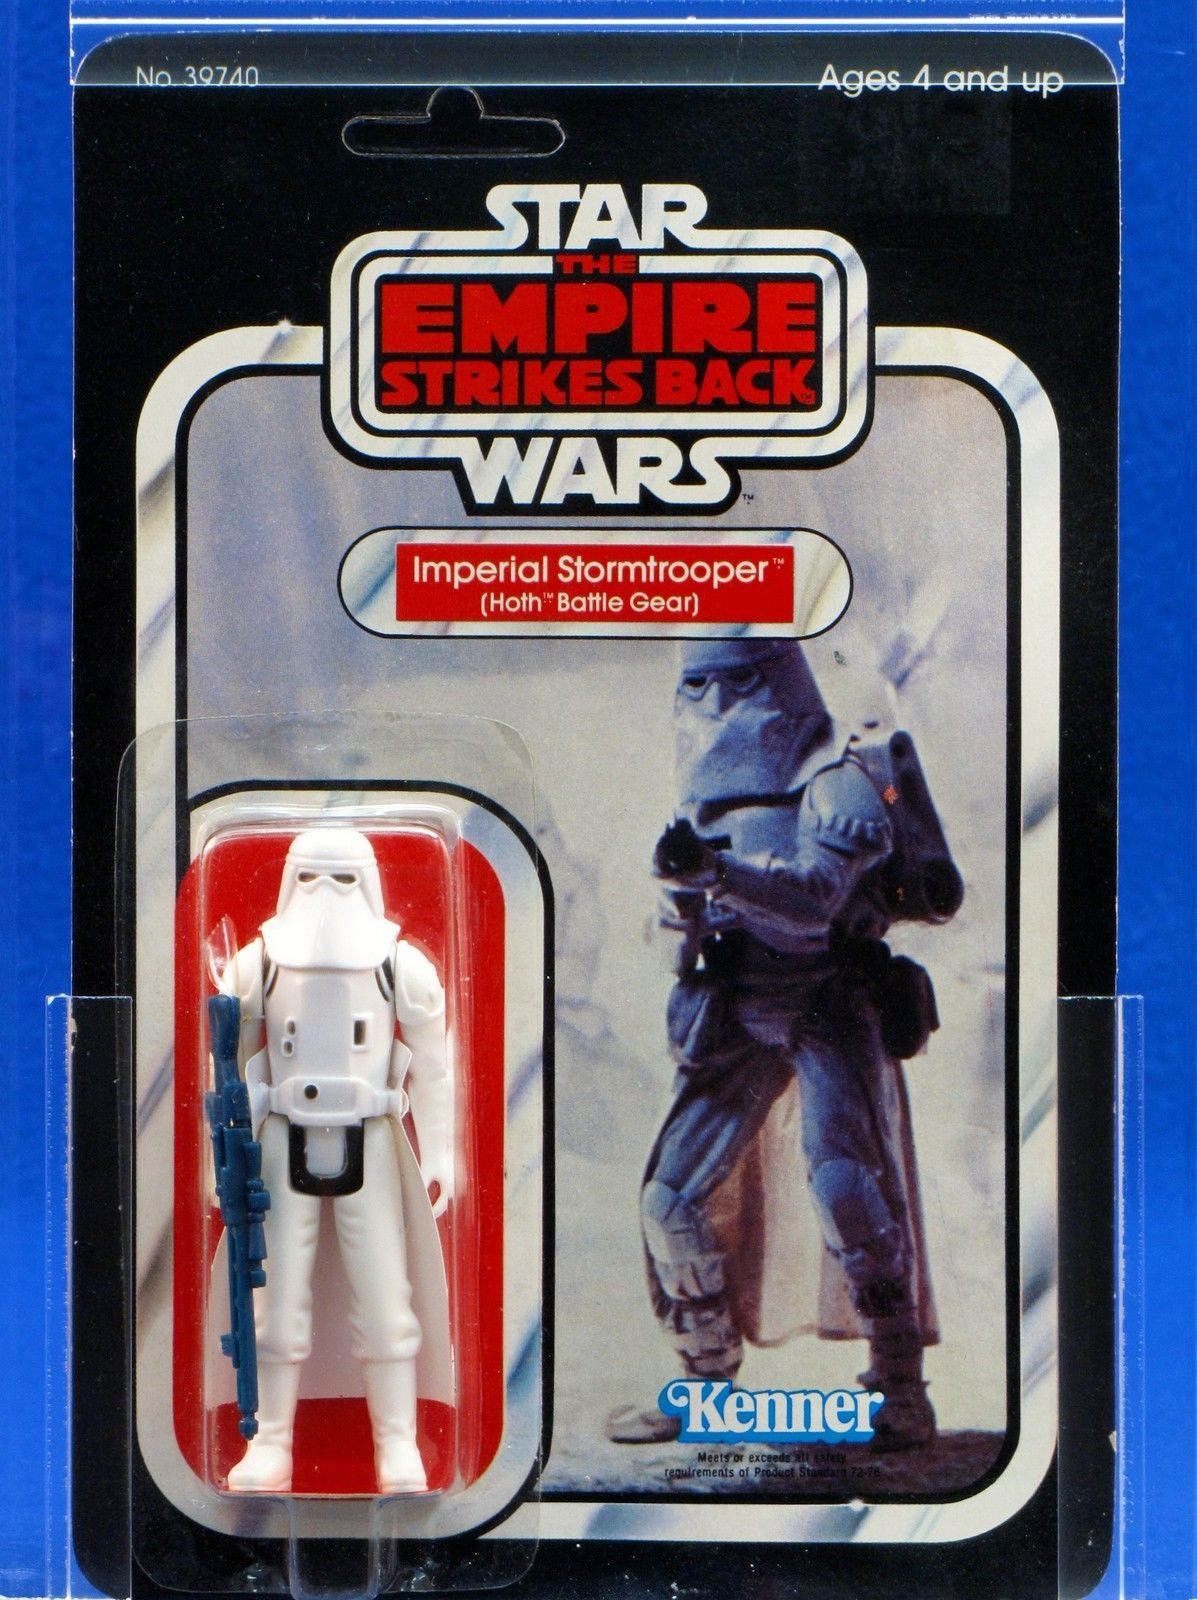 Imperial Stormtrooper Snowtrooper Hoth Vintage STAR WARS Saga Collection MOC